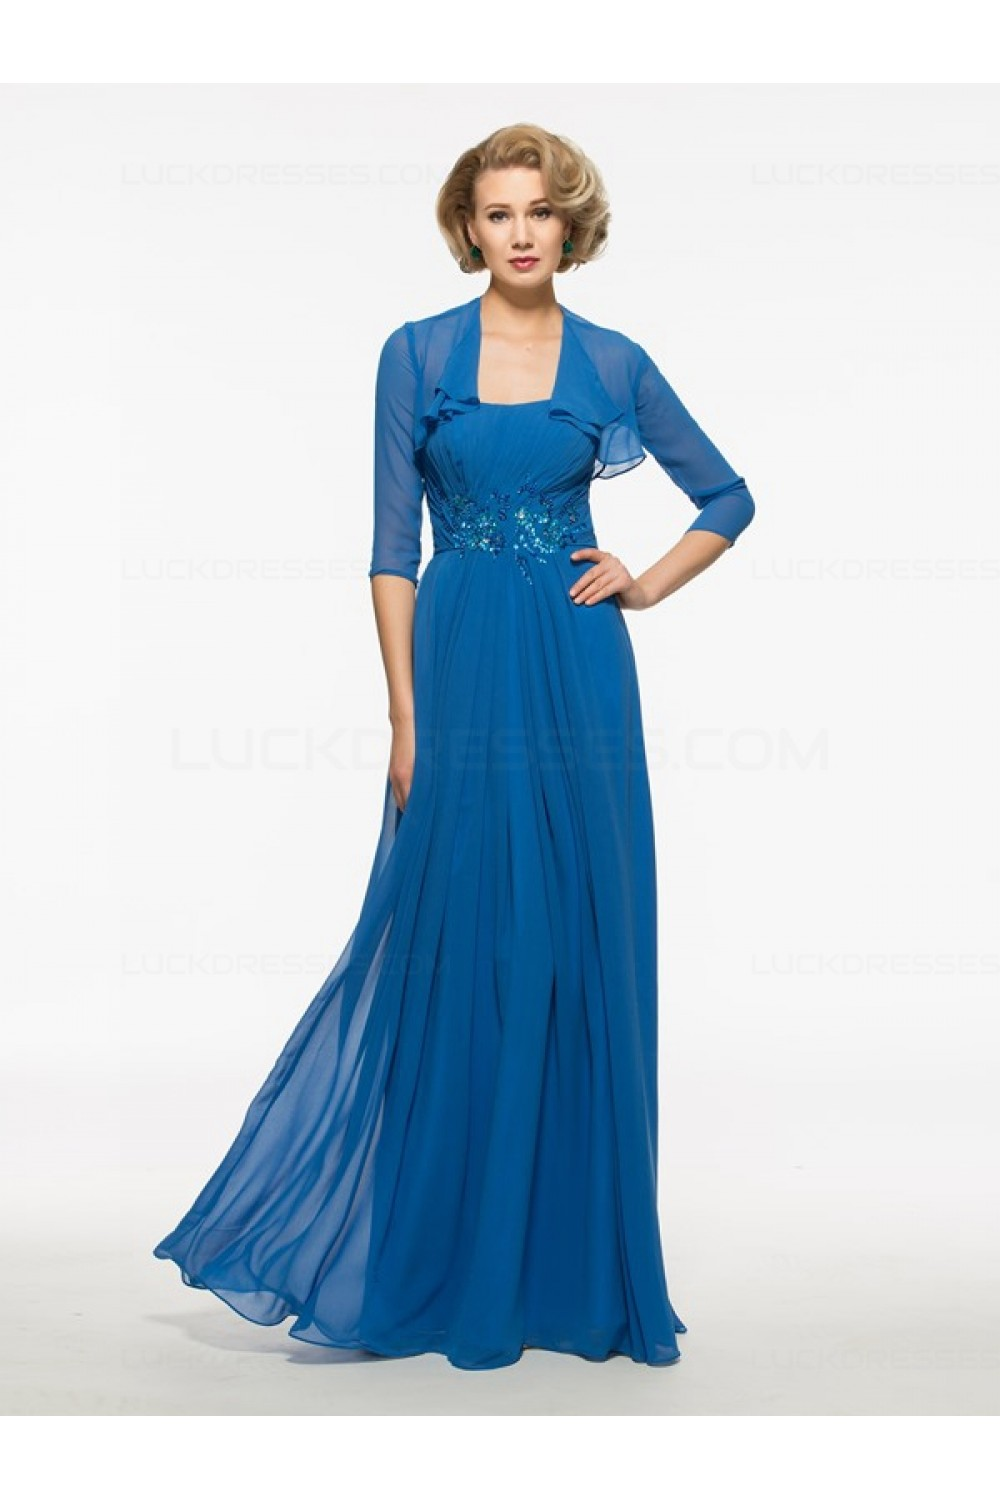 Long Blue Chiffon Mother of The Bride Dresses with A Jacket 3040015